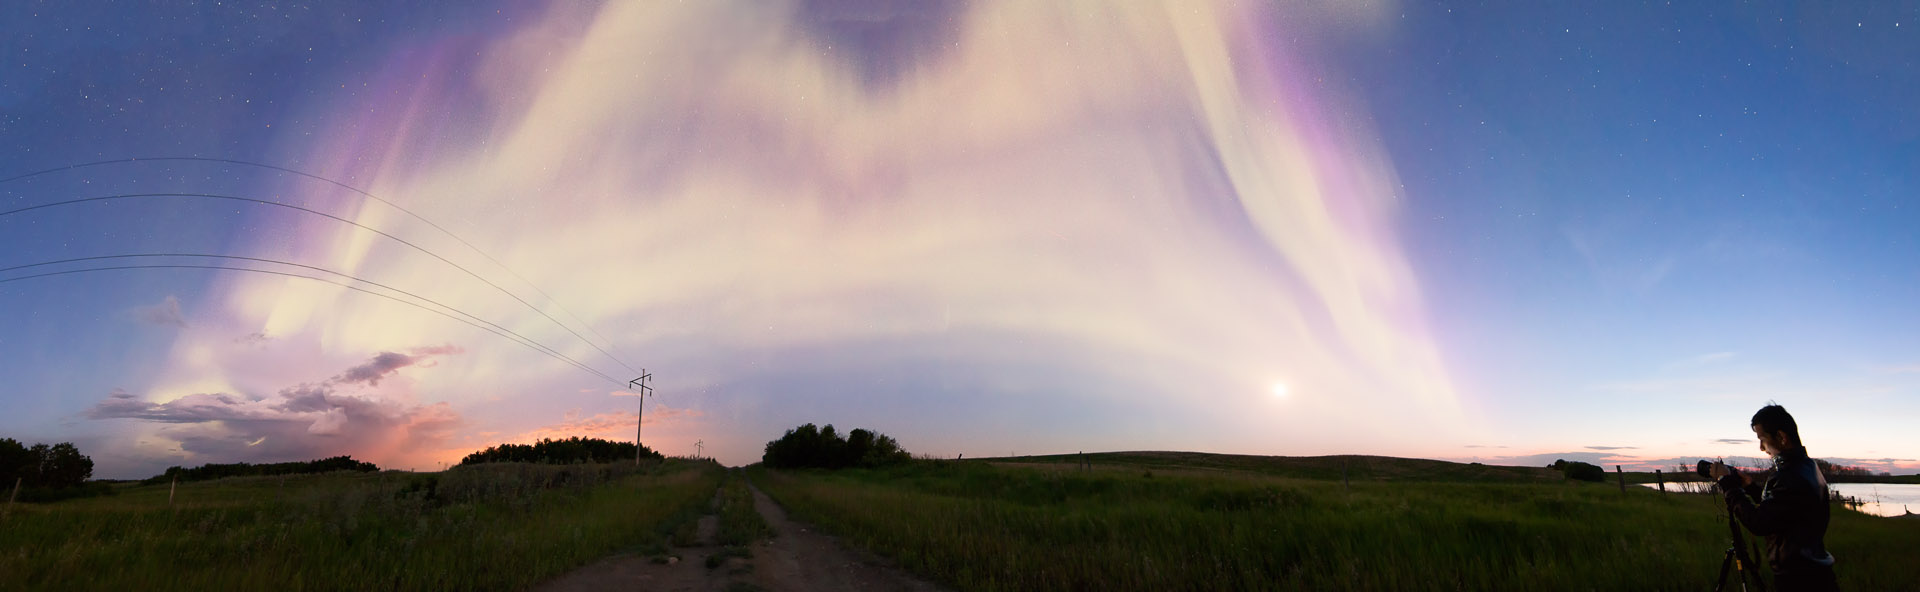 14 shot panoramic featuring aurora, clouds, the moon, and Herry.      11mm  f/2.8  5s   ISO2000